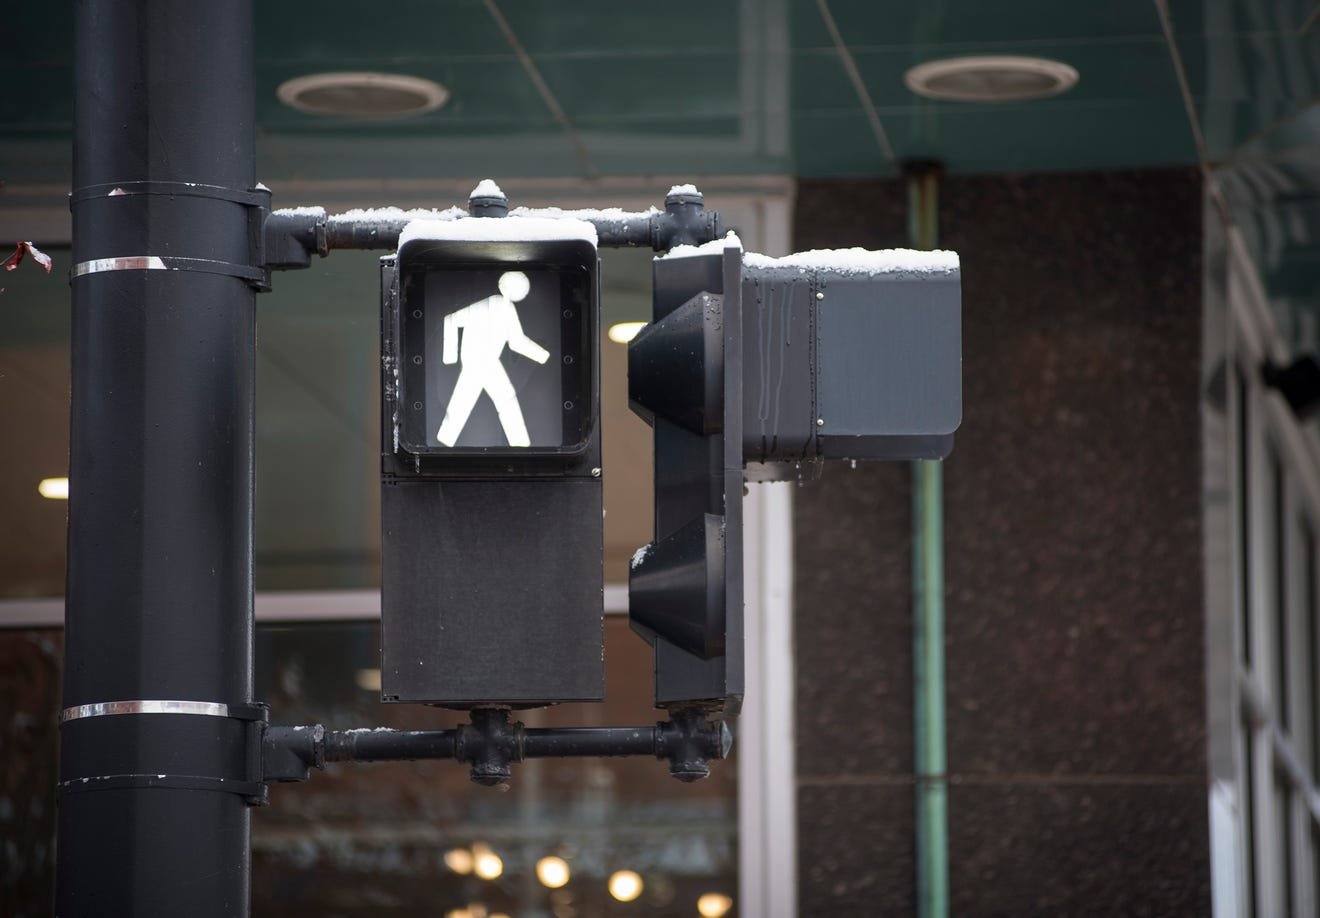 Pedestrian safety continues to be an ongoing concern in many Cincinnati neighborhoods.